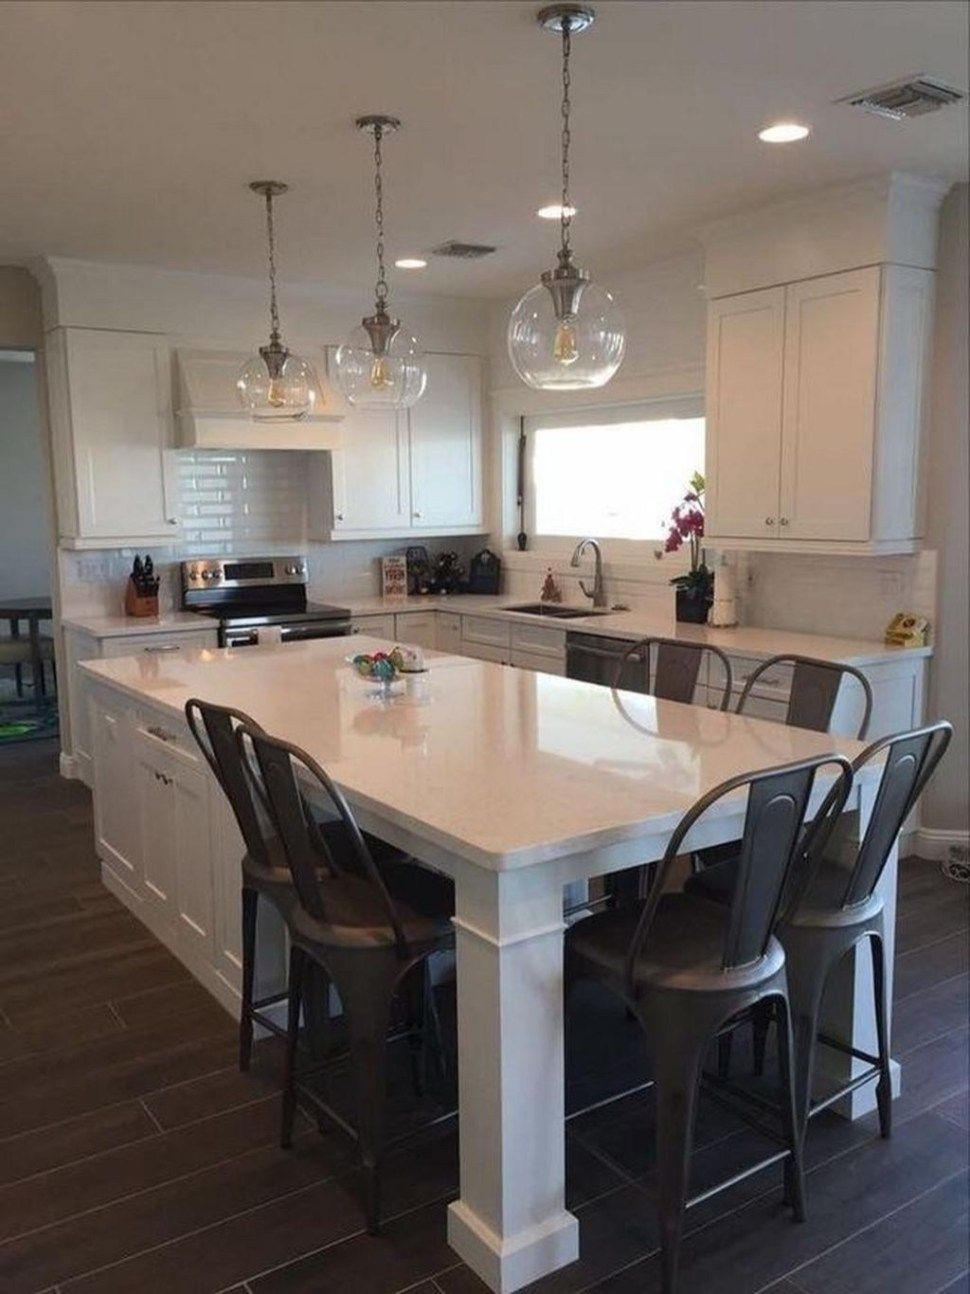 Stunning Kitchen Island Ideas With Seating26 Kitchen Layout Diy Kitchen Renovation Kitchen Island Table